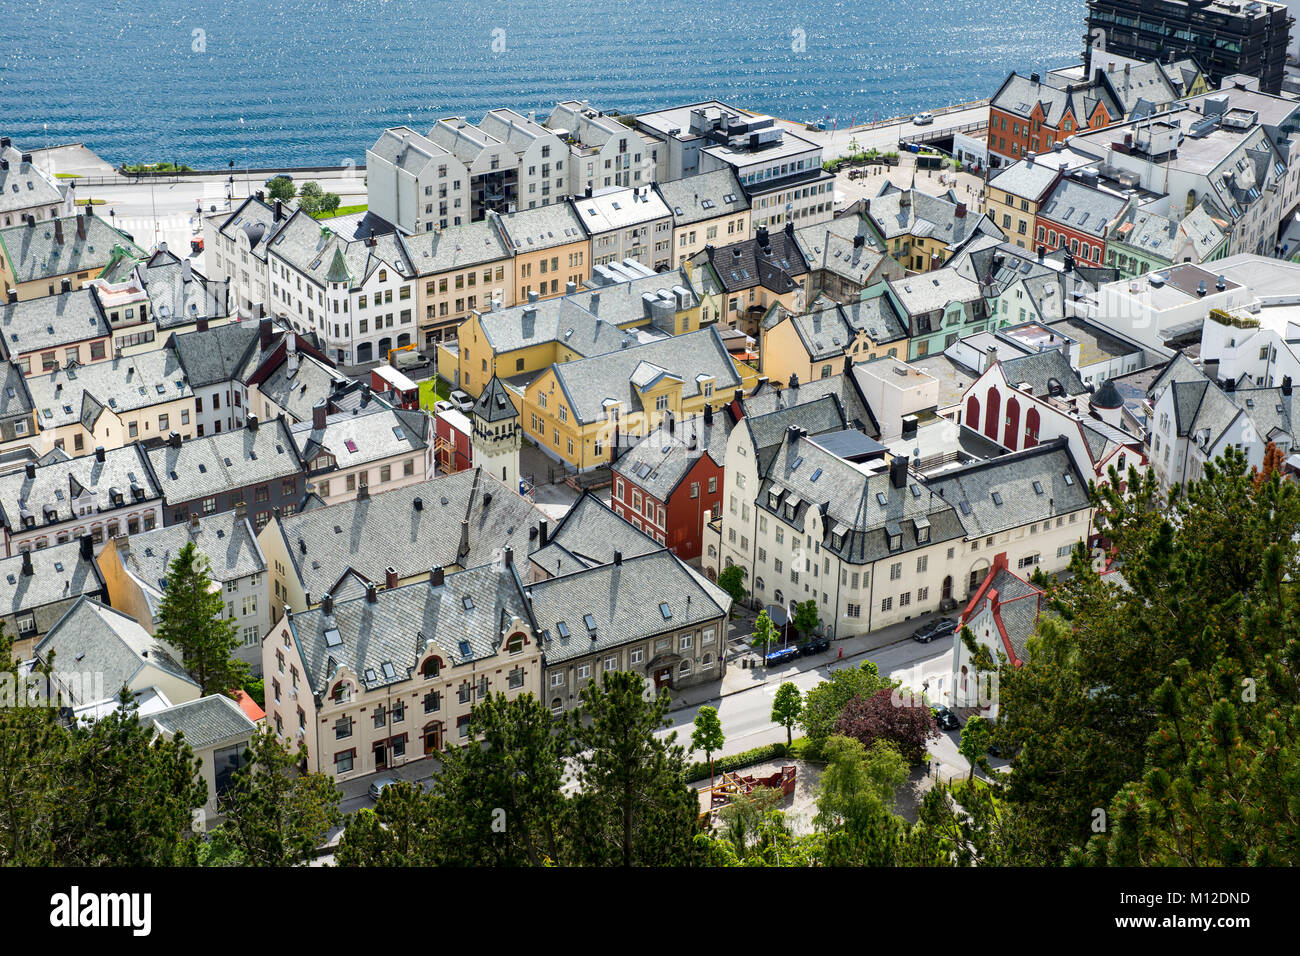 Aerial view over the town of Alesund in Norway - Stock Image